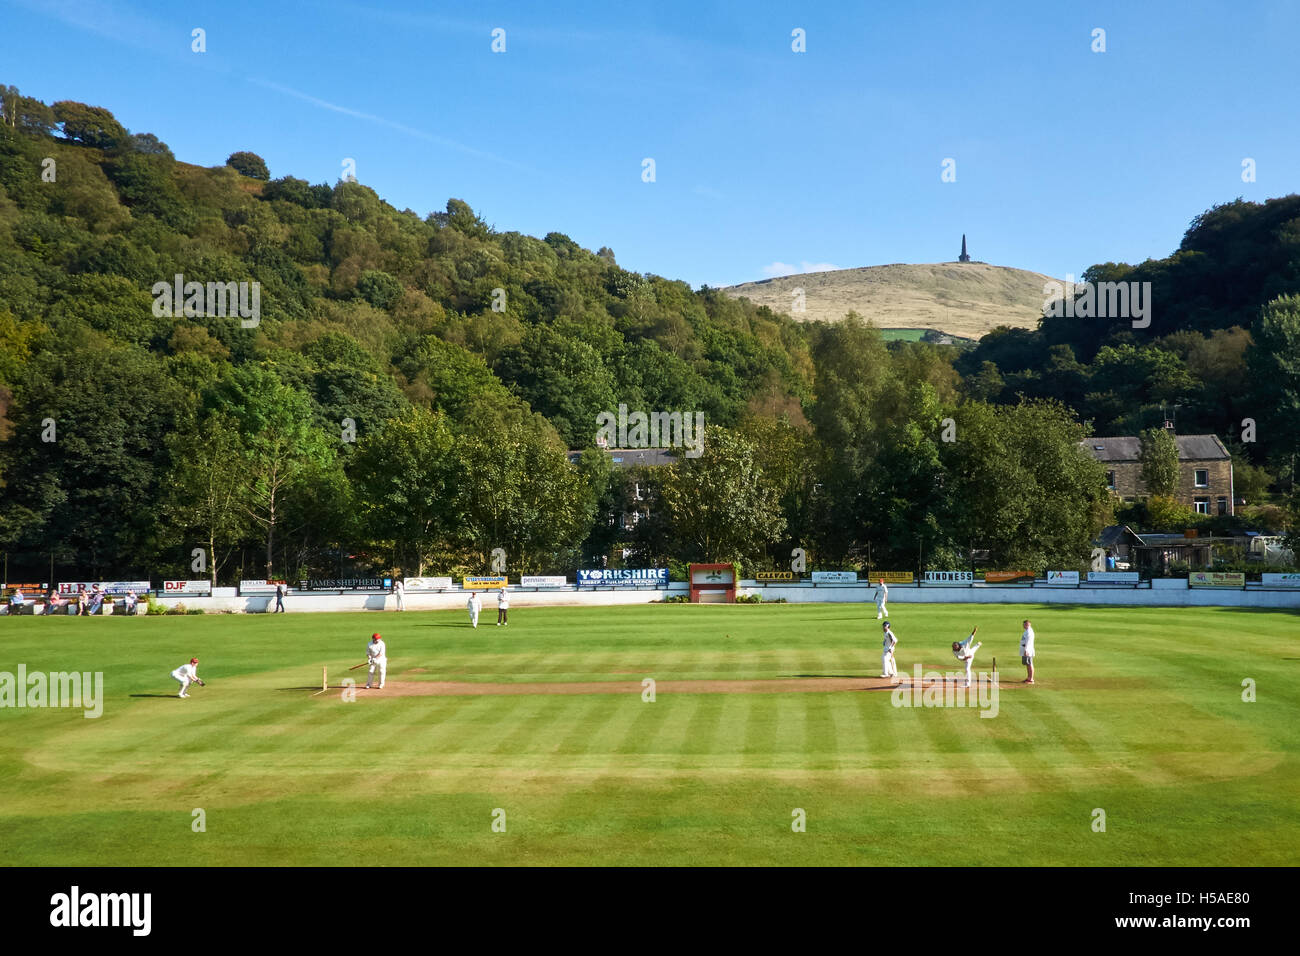 Cricket match taking place on a clear, sunny day in Yorkshire with a monument on the hillside behind. - Stock Image